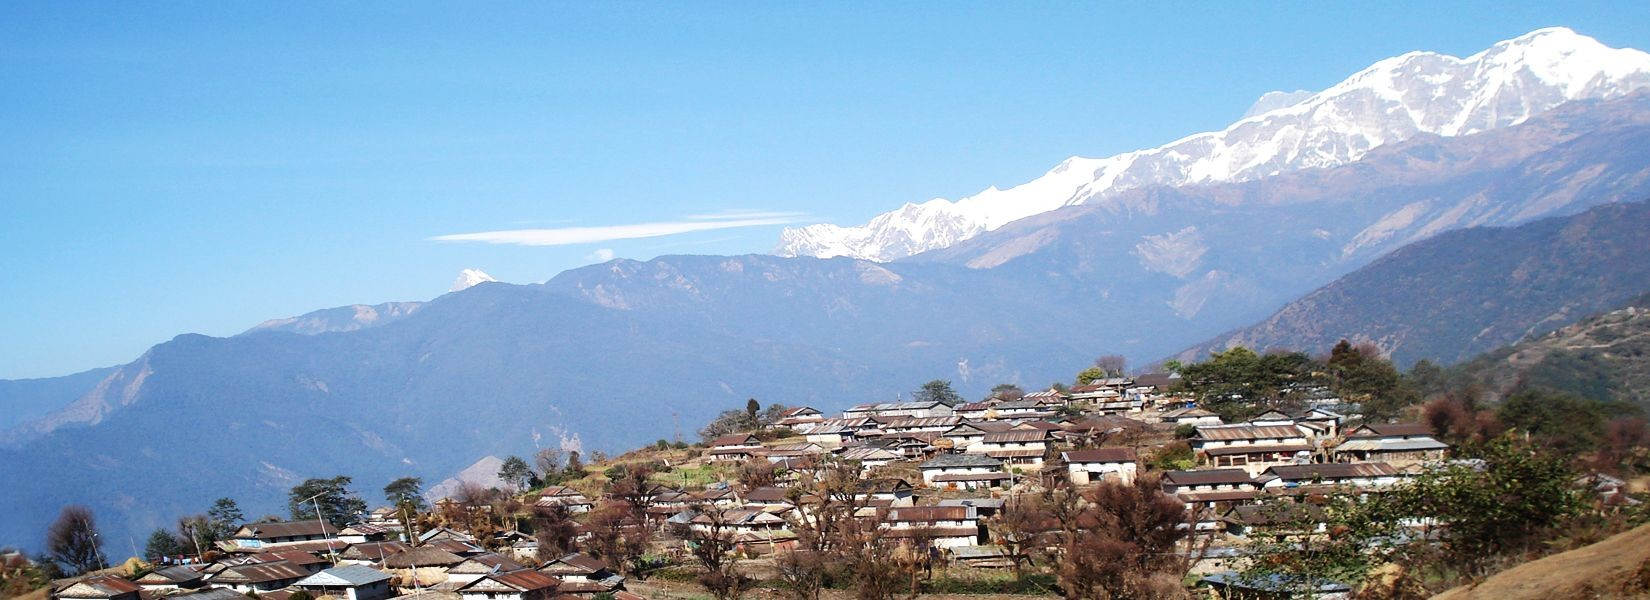 Mountain view from Ghalegaun, Traditional Village Ghalegaun, Himalayan Village Ghalegaun,